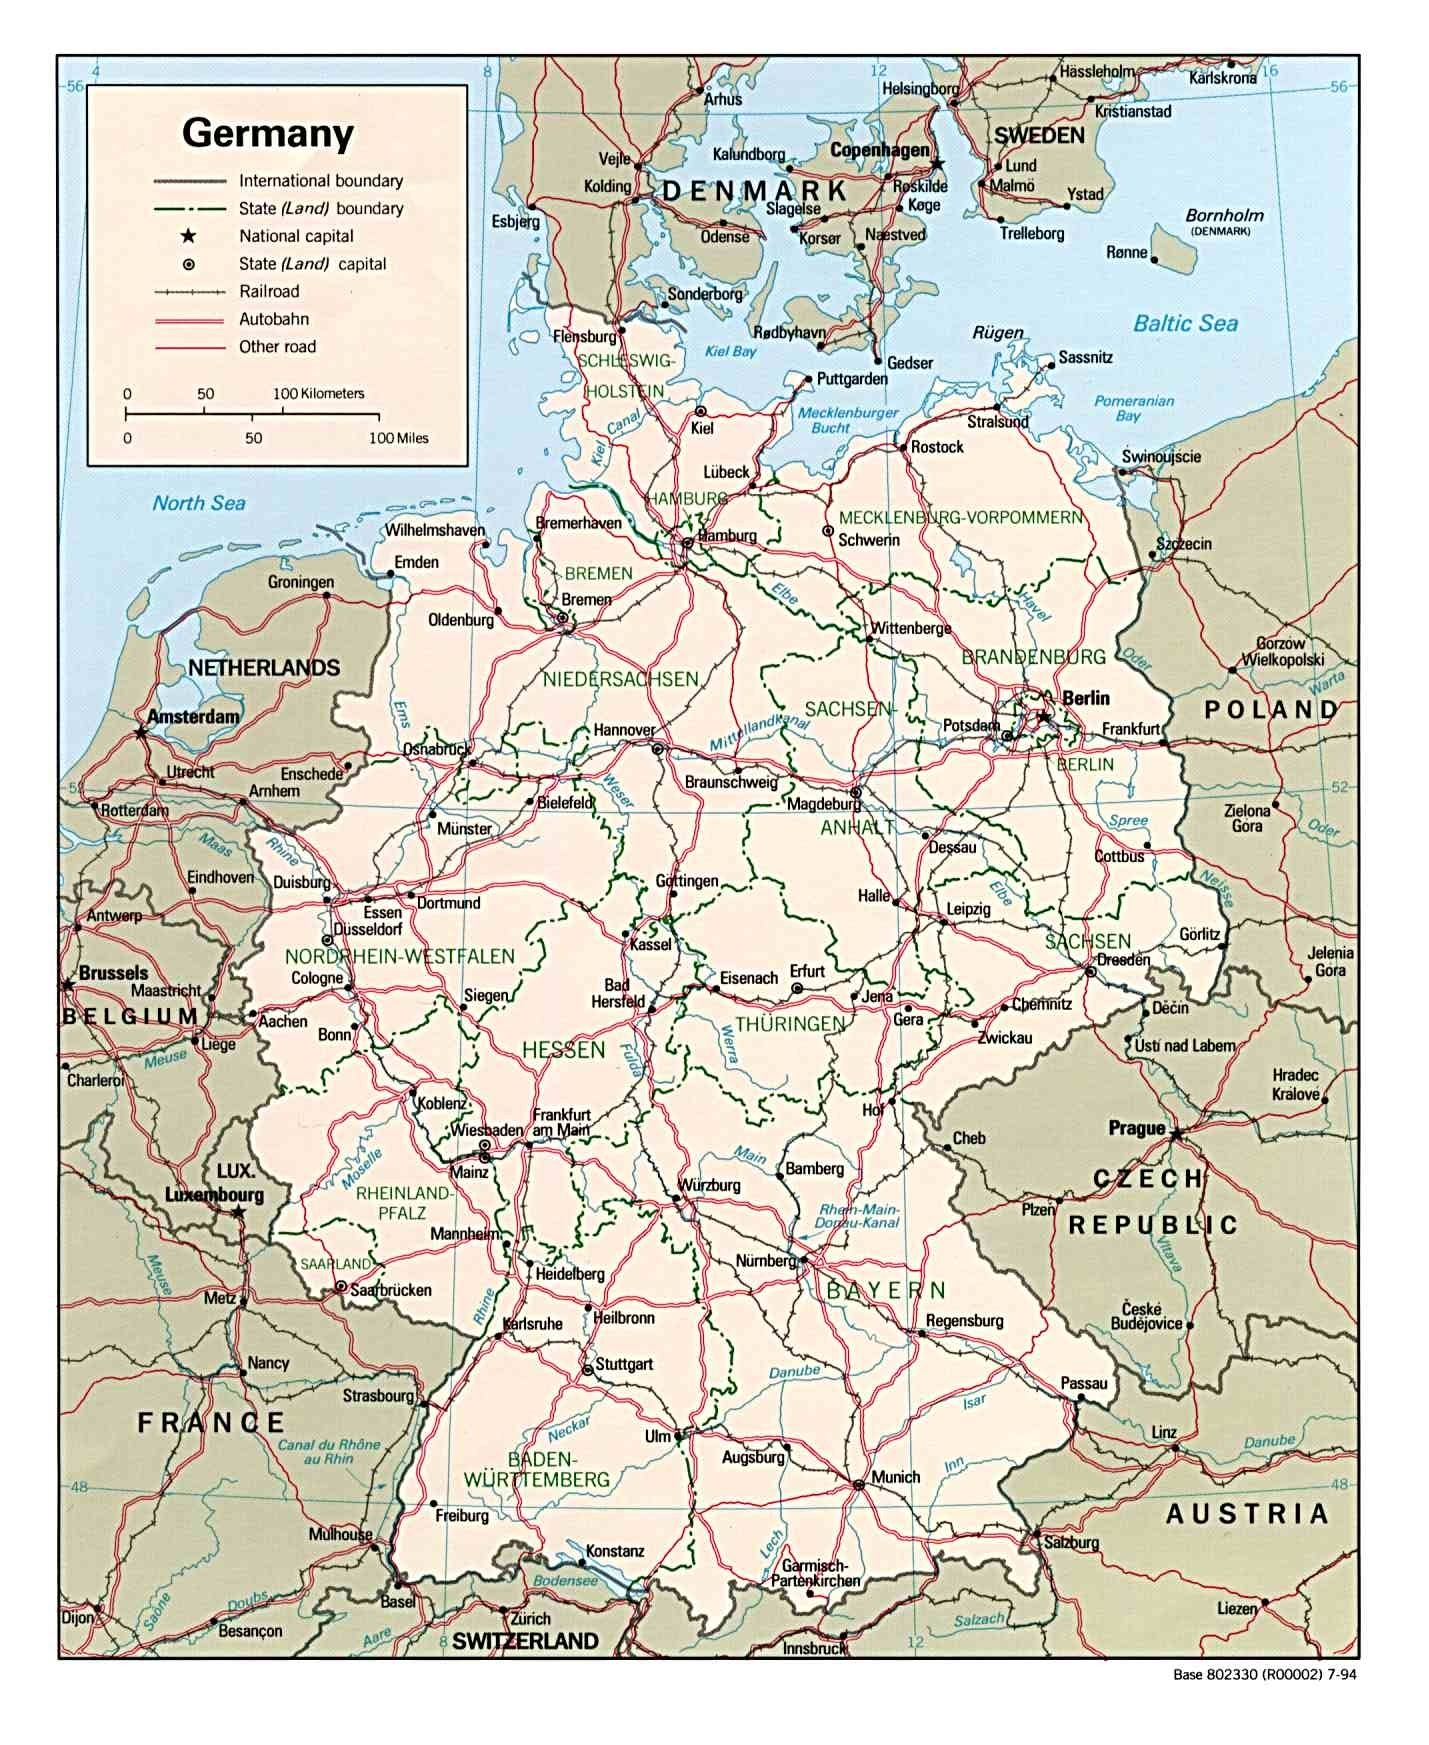 Download Free Germany Maps inside Germany Map Download